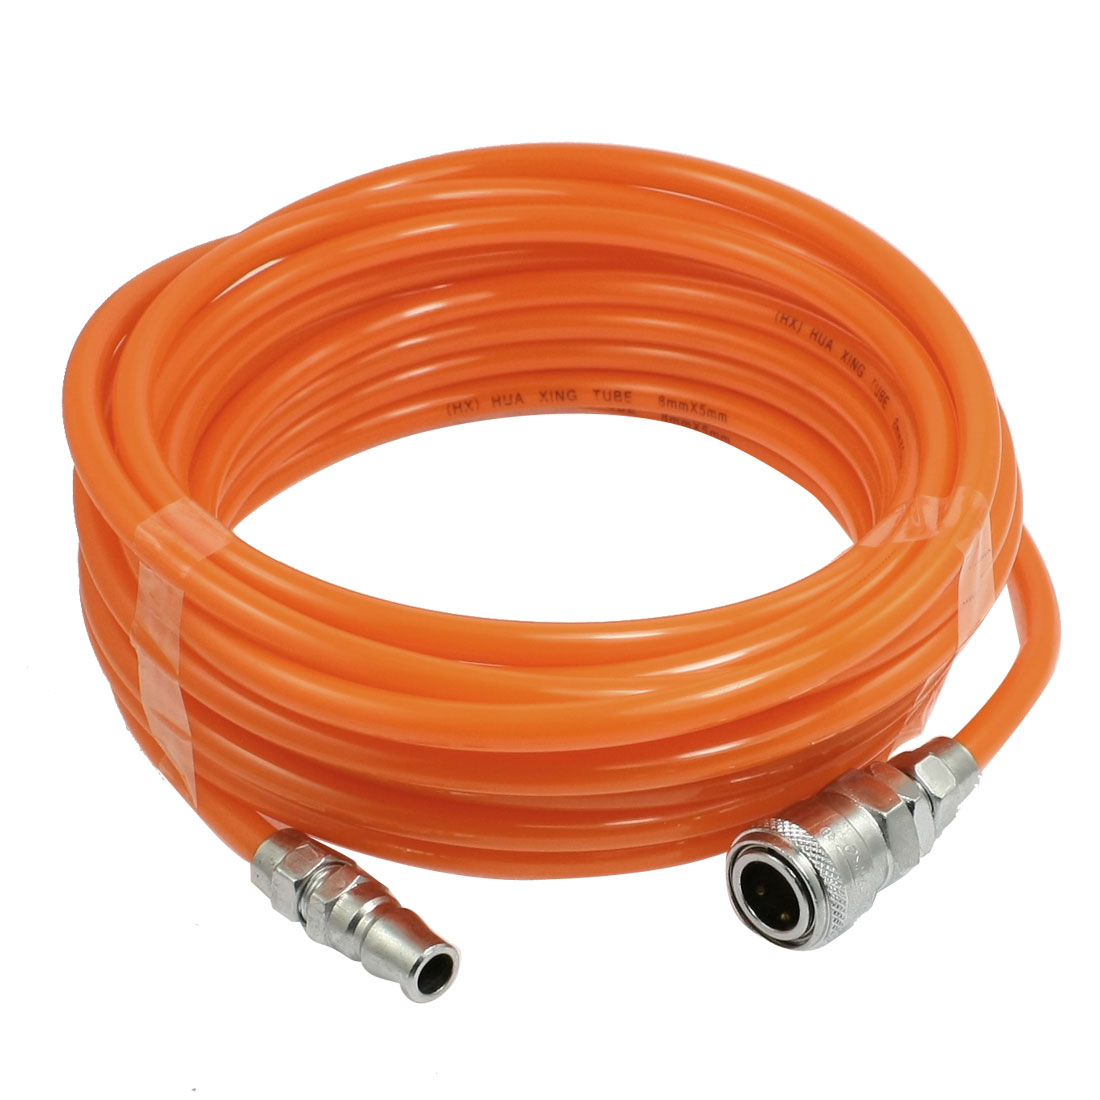 8mm x 5mm Polyurethane PU Air Compressor Hose Tube Orange Red 9M 29.5Ft